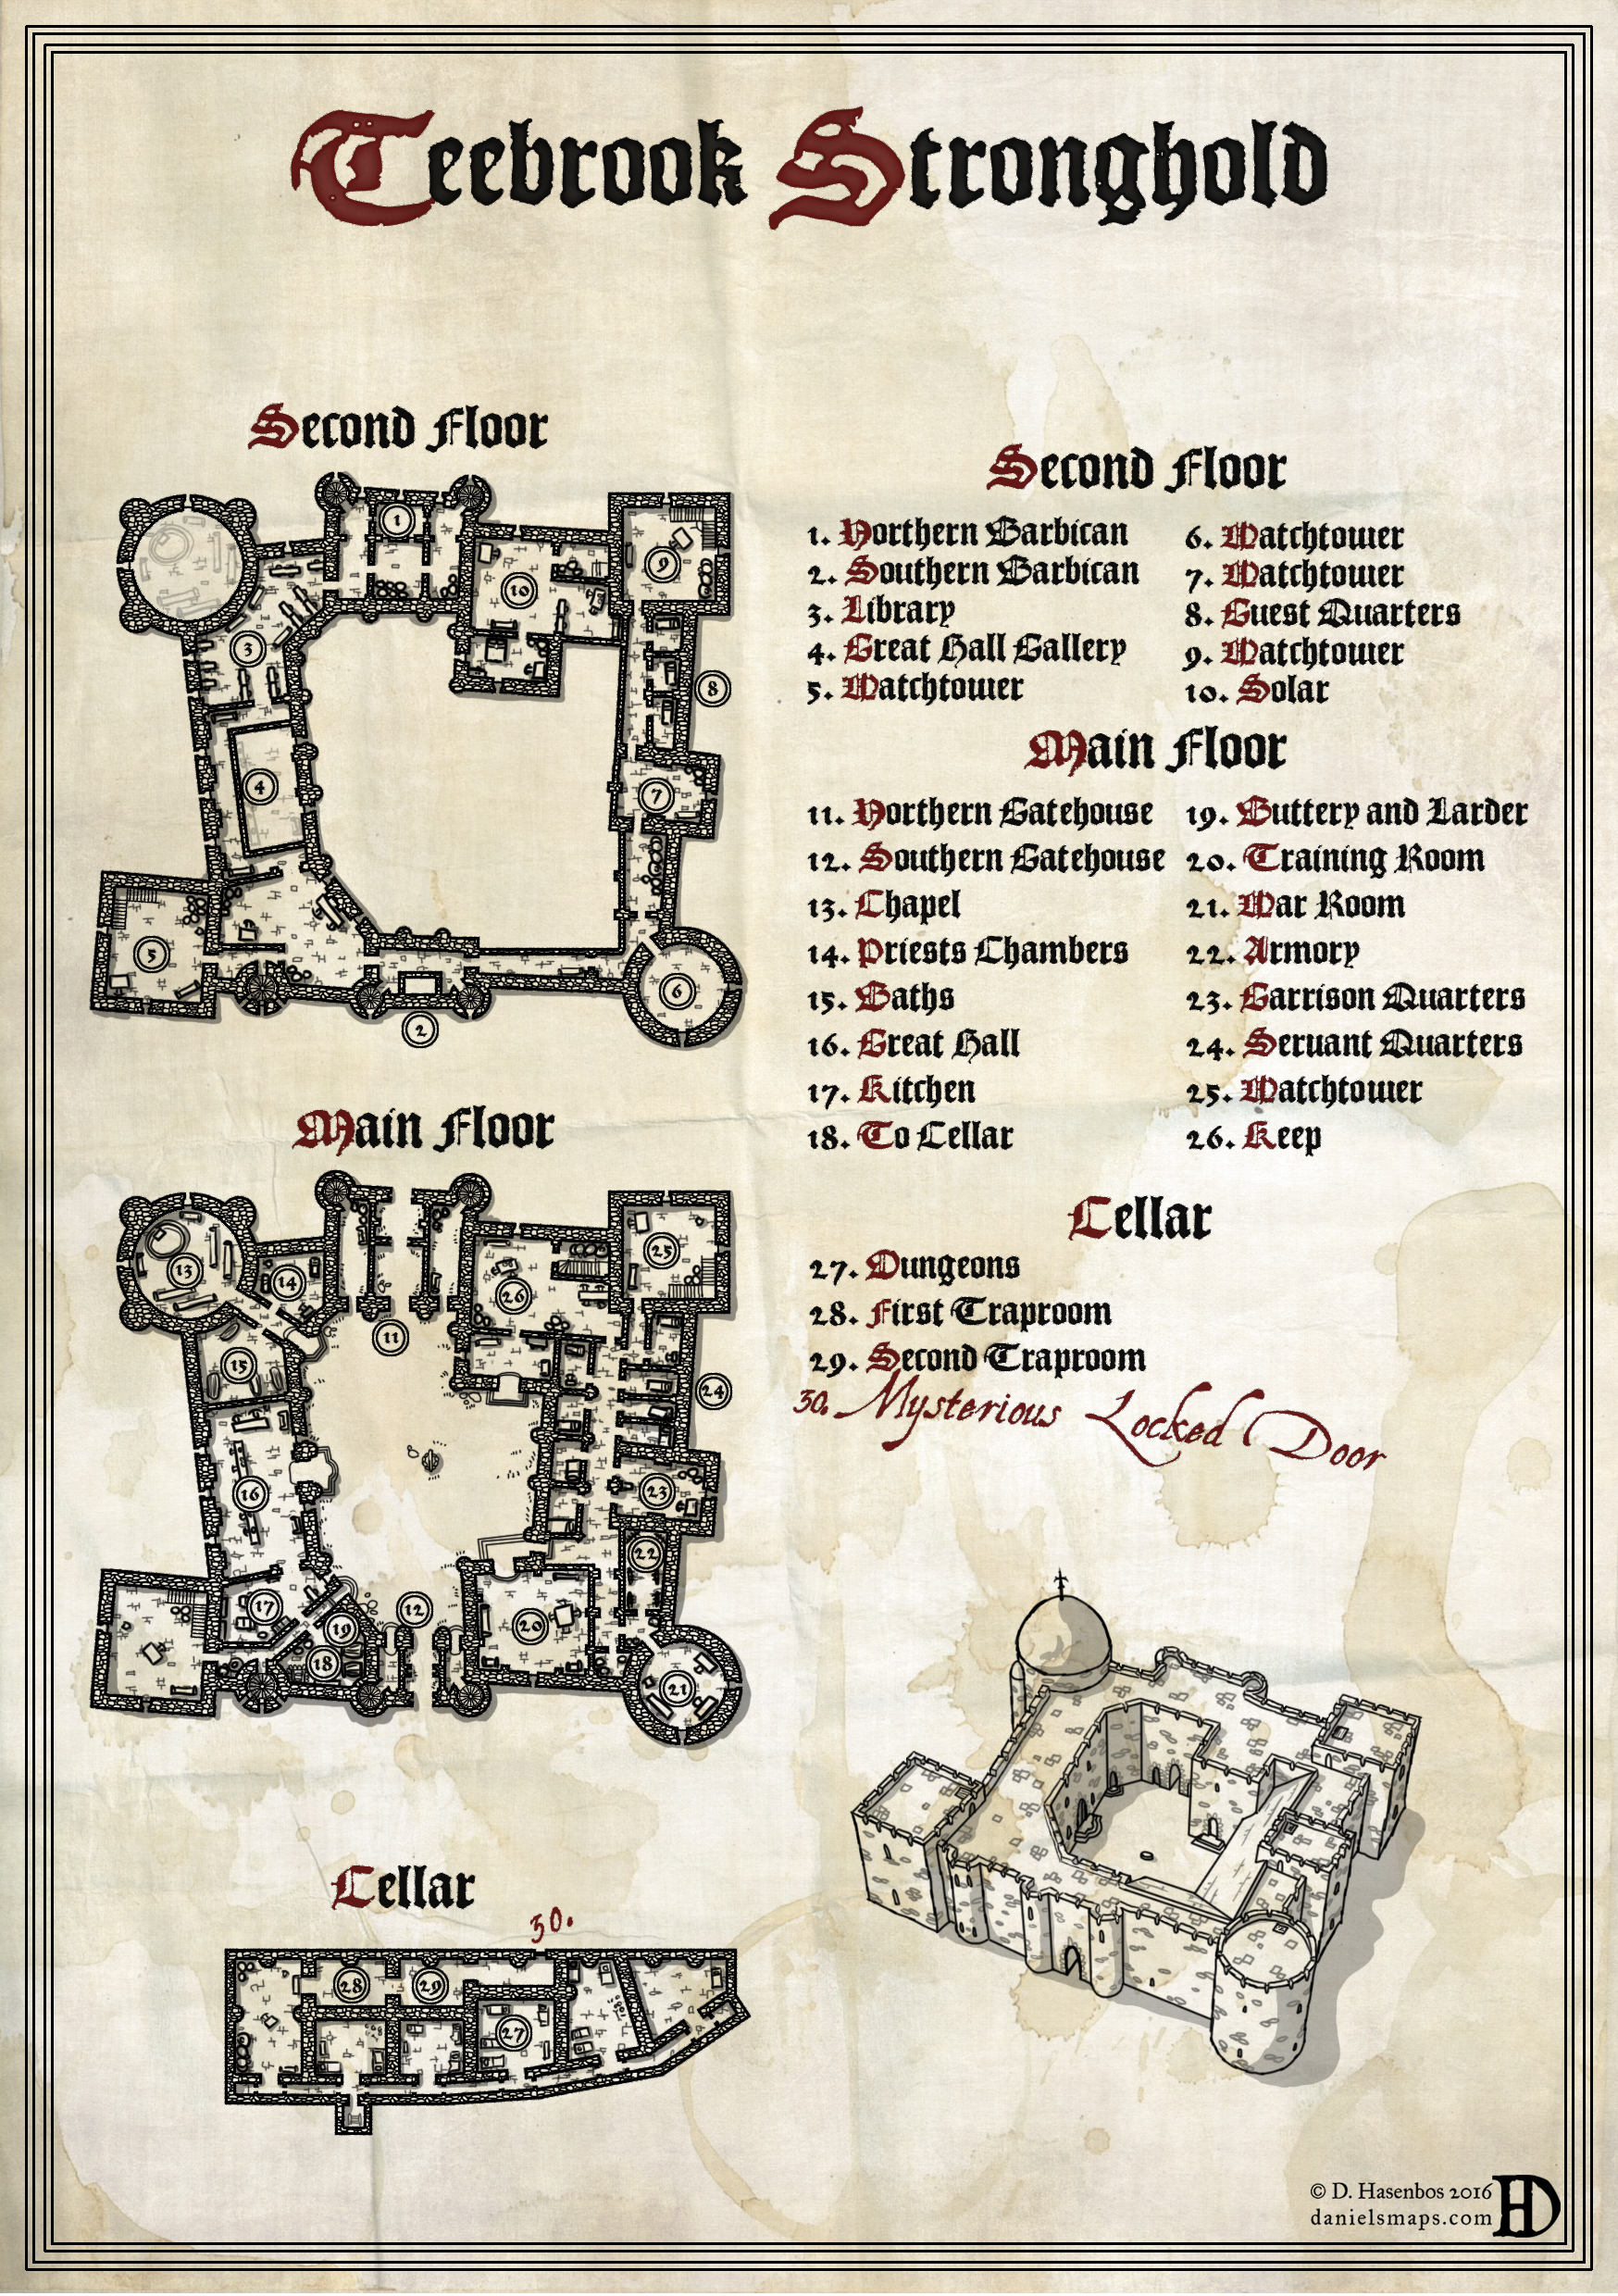 [Day Map #2] Teebrook Stronghold